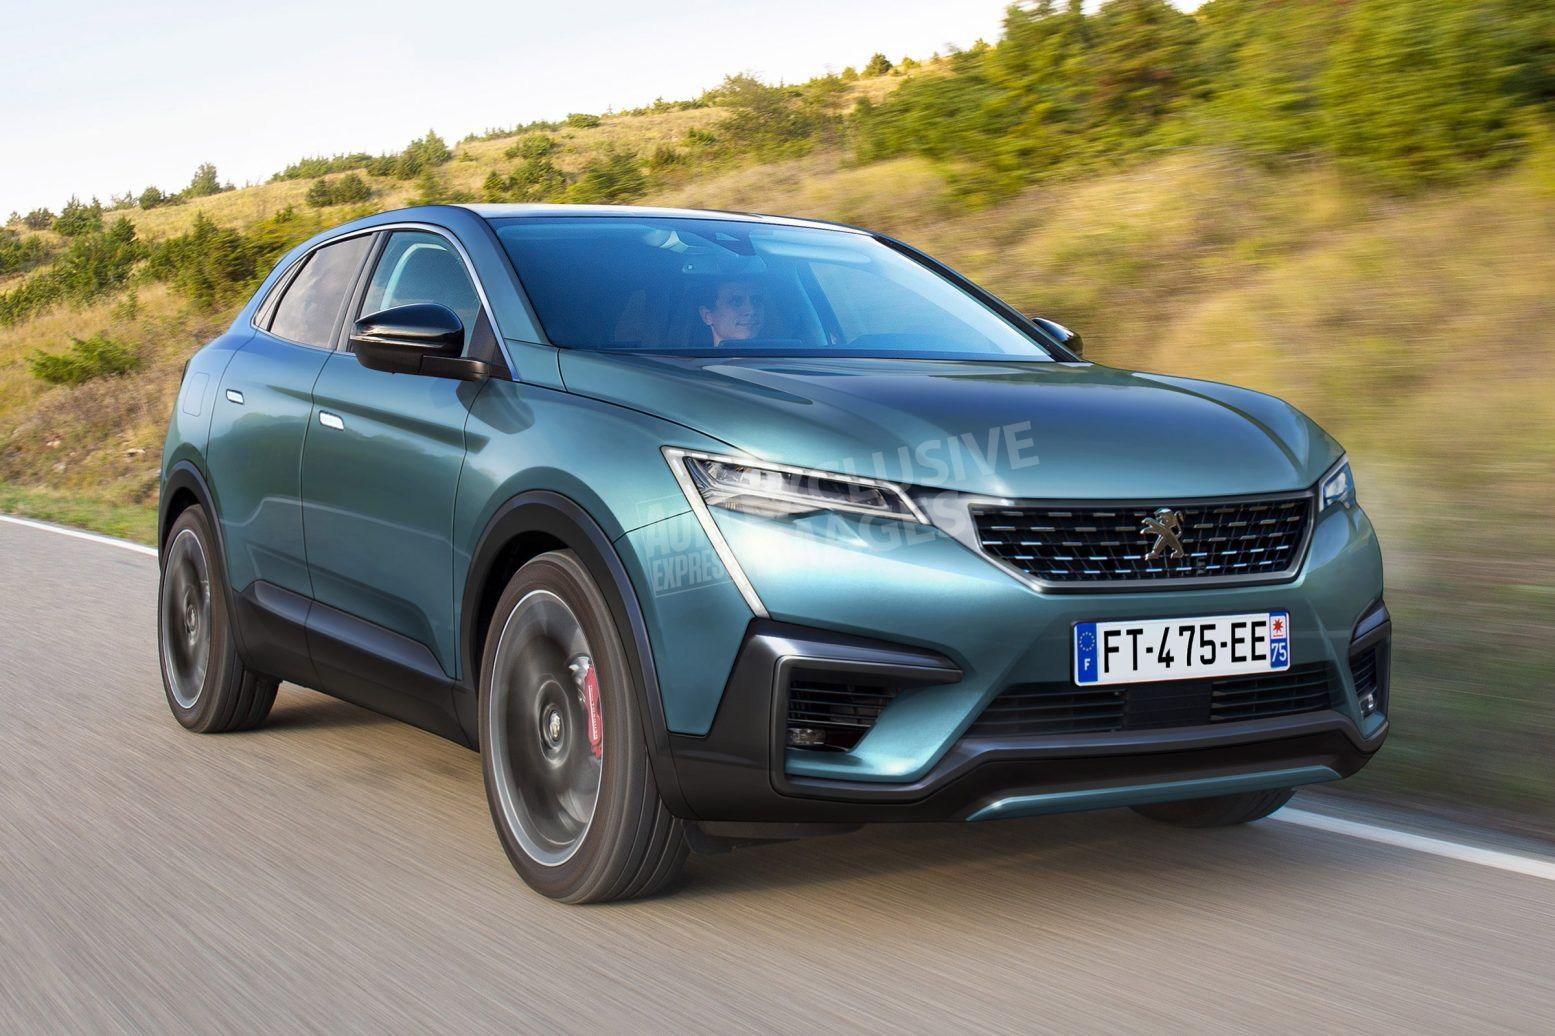 The 2020 Peugeot 2008 Suv Is Going Through Cold Weather Screening In Sweden 2020 Peugeot 2008 Release Date It S Anticipated To Go On Sale At The Tai Aircross